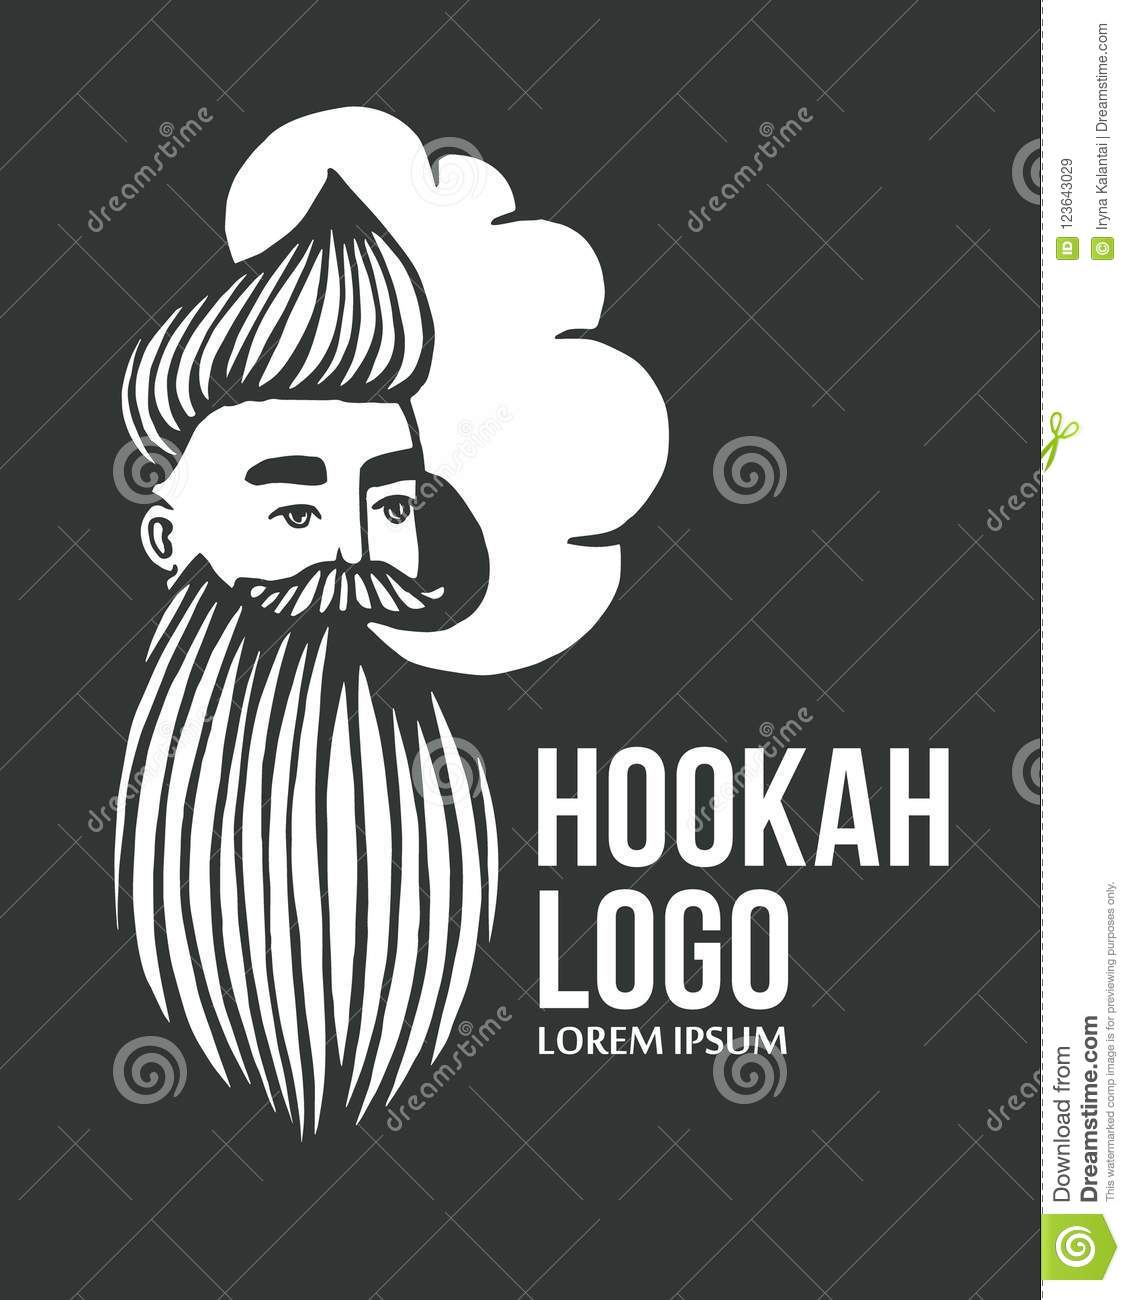 Hookah and drawn hipster logo with mustache and beard man with cloud vector hookah logo sticker logo emblem